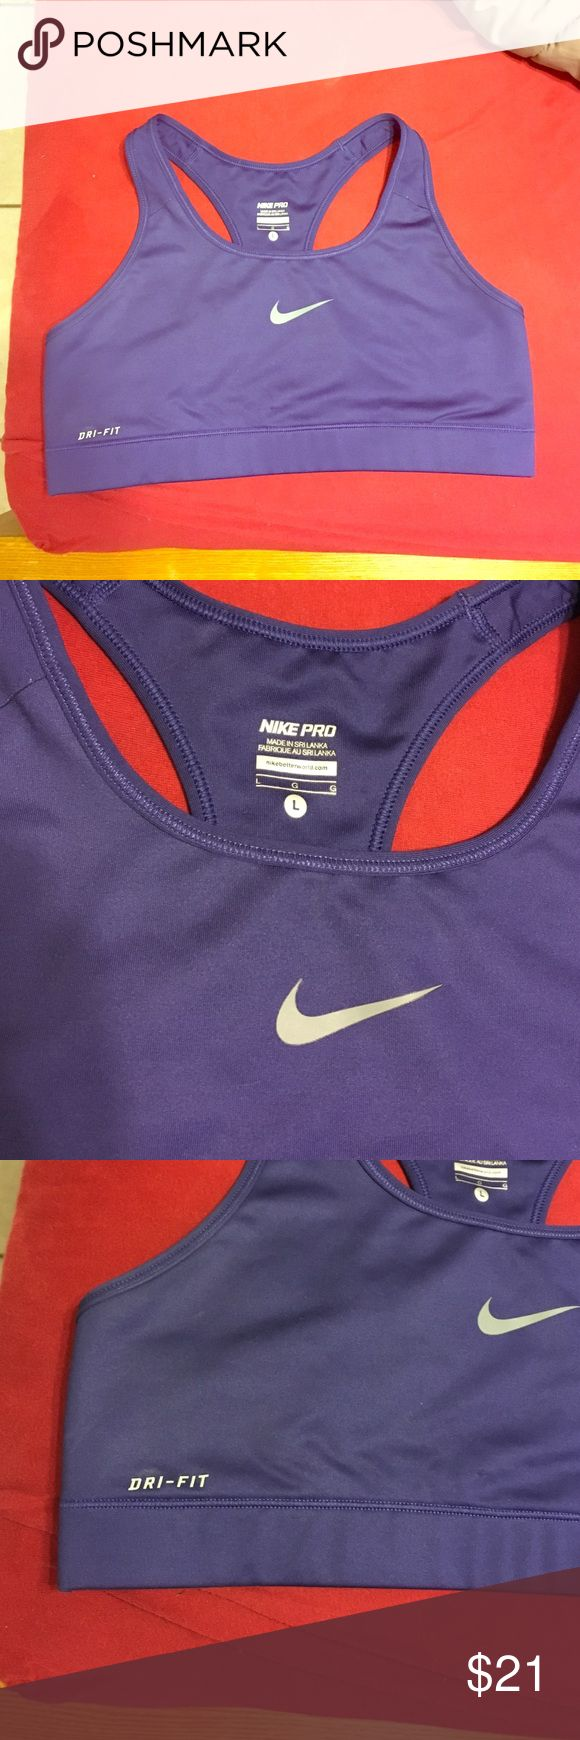 New Nike pro dri-fit purple sports bra size large Excellent condition!!! Purple-grape color with a silver Nike check racer back sports bra. Worn one time!! 88% polyester, 12% spandex. Retails for $35! I ship within the next business day unless purchased on a Friday. Nike Intimates & Sleepwear Bras